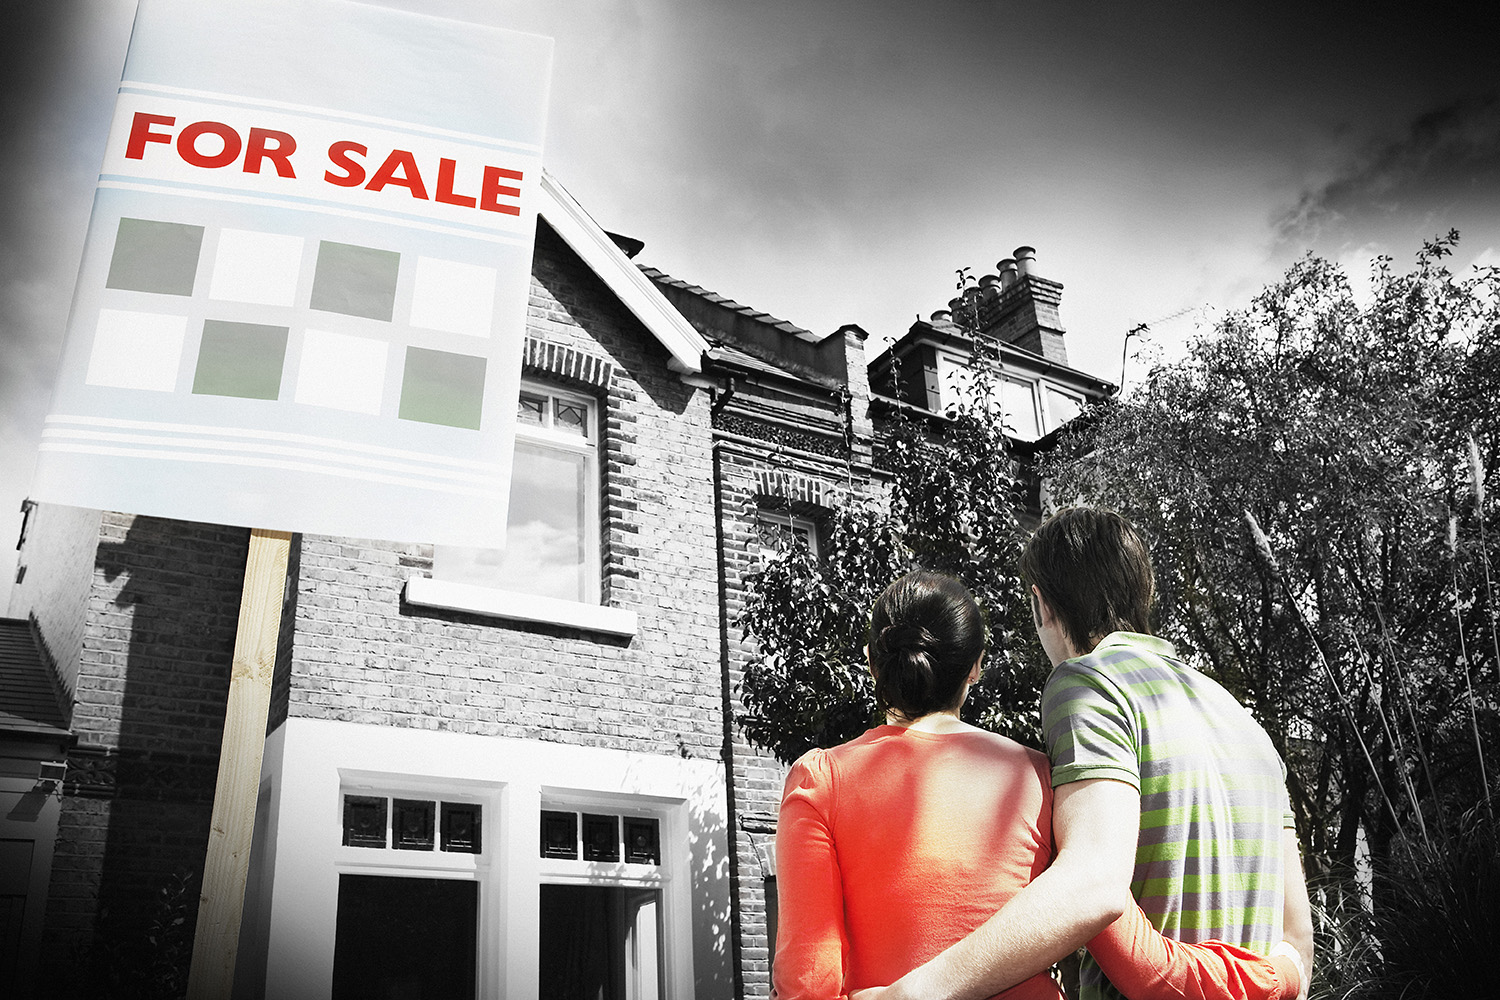 Renters: Are You Ready to Buy a Home?